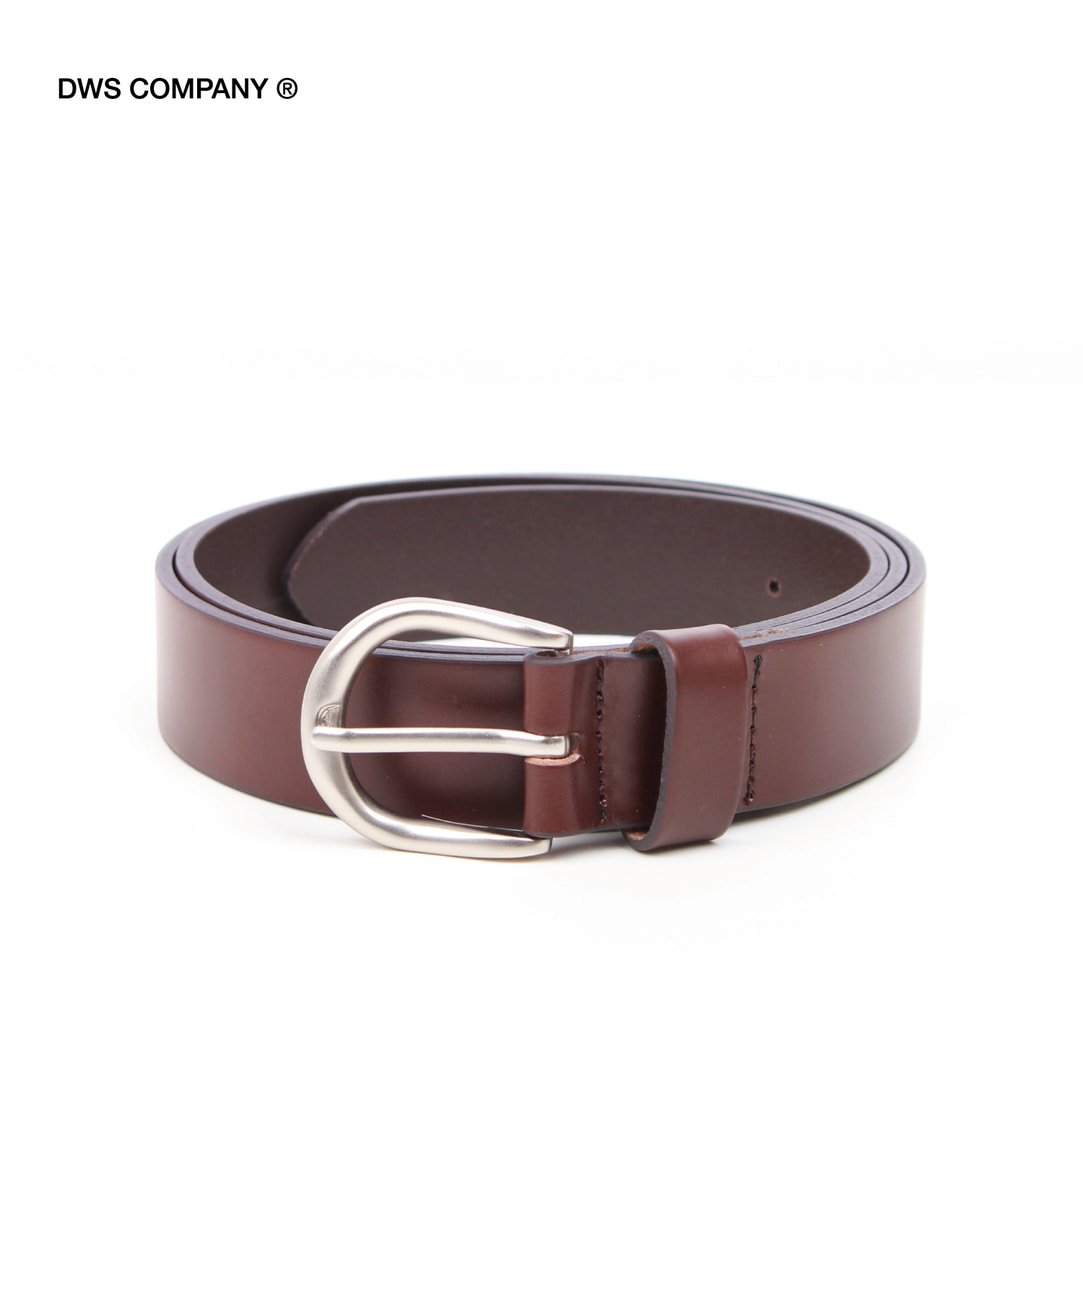 DWS BASIC LEATHER BELT(DARK BROWN)